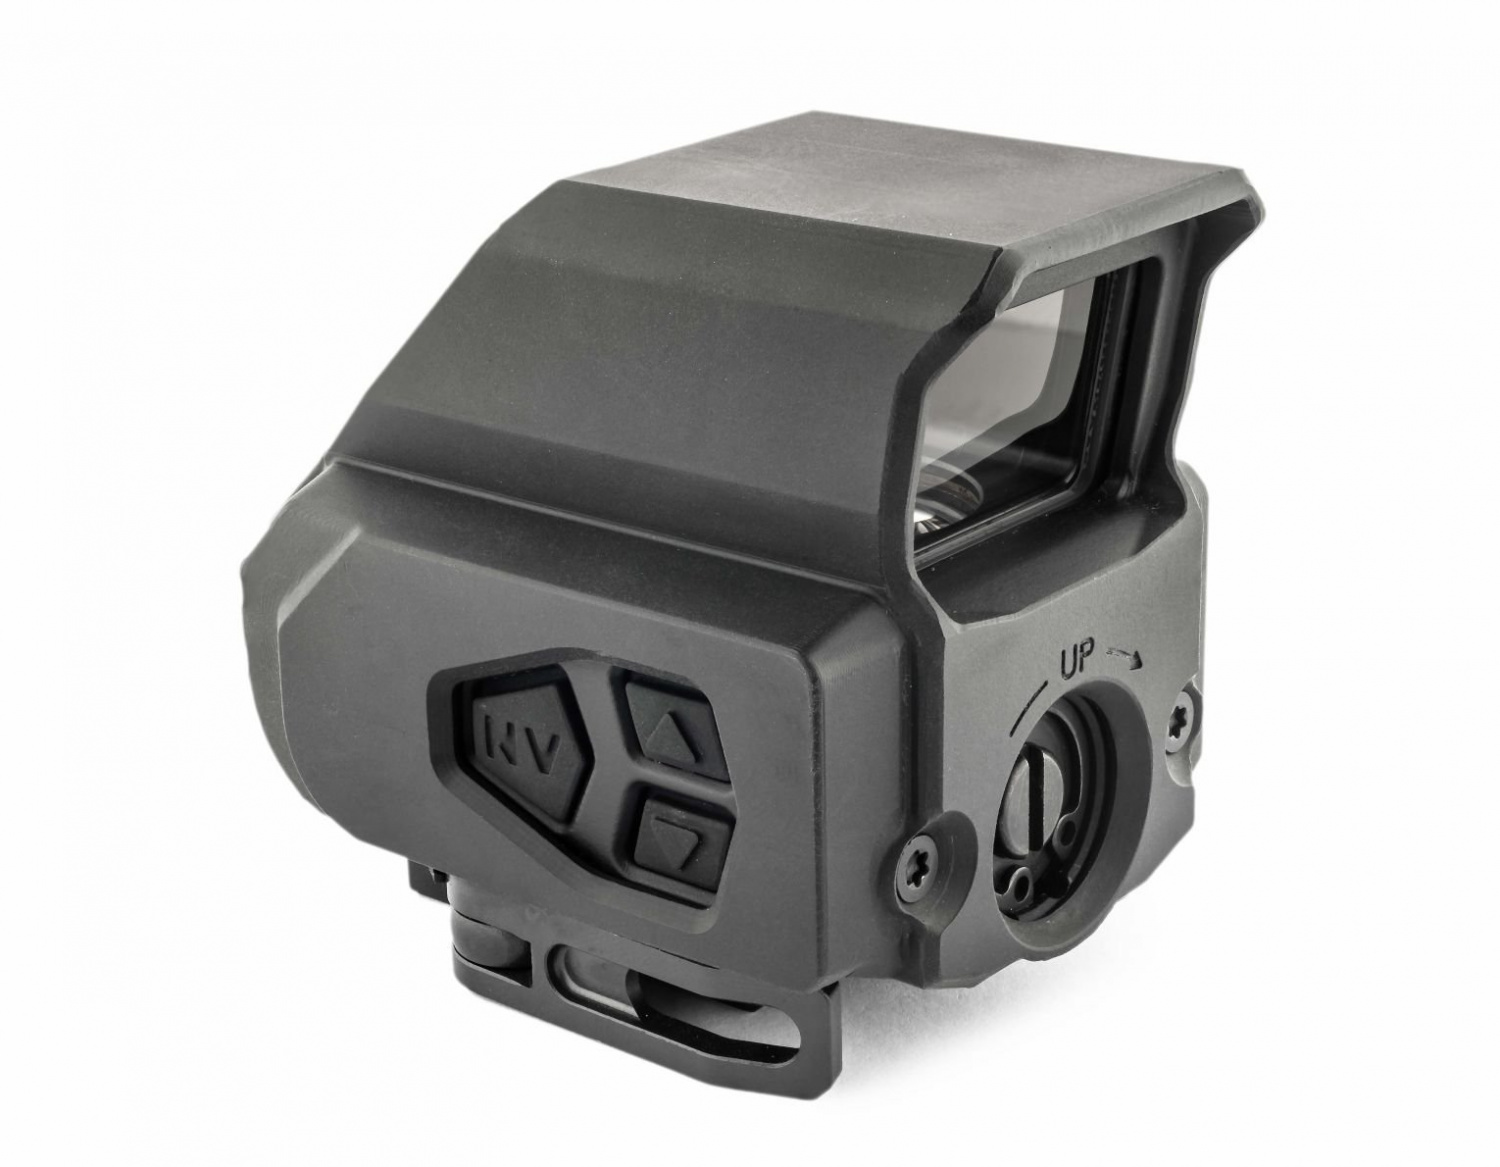 Introducing the Meprolight MEPRO O2 Red Dot Sight